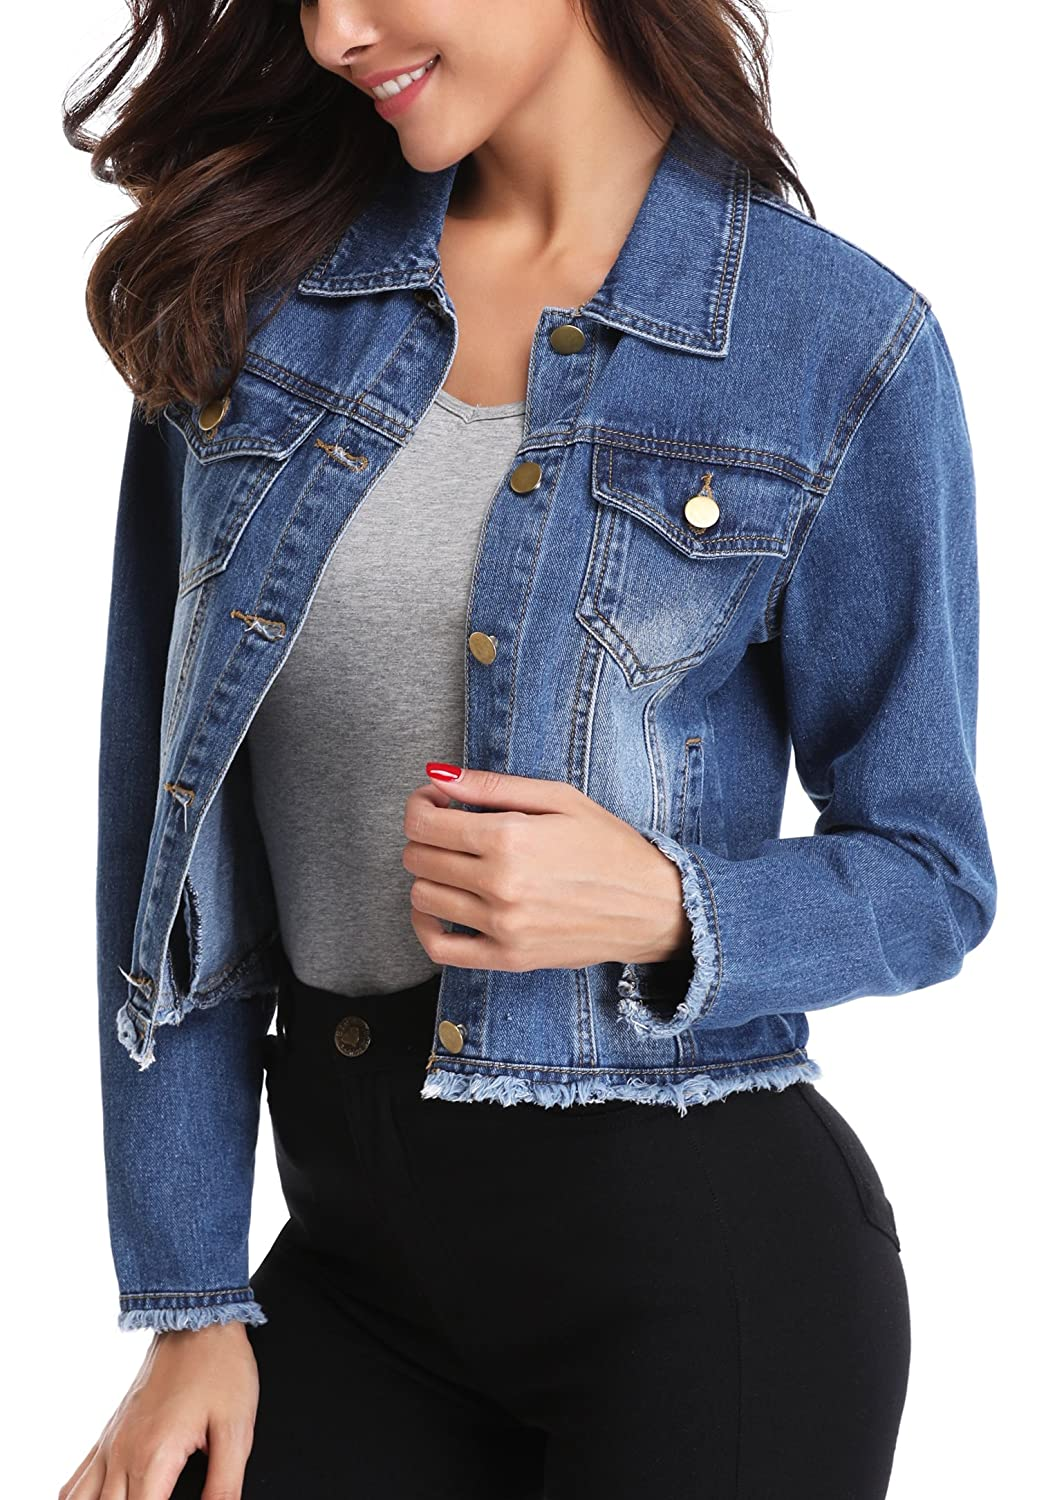 MISS MOLY Denim Jacket Vest for Women Vintage Ripped Button up Western Pockets Cropped Washed Jean Fall Jacket Coat